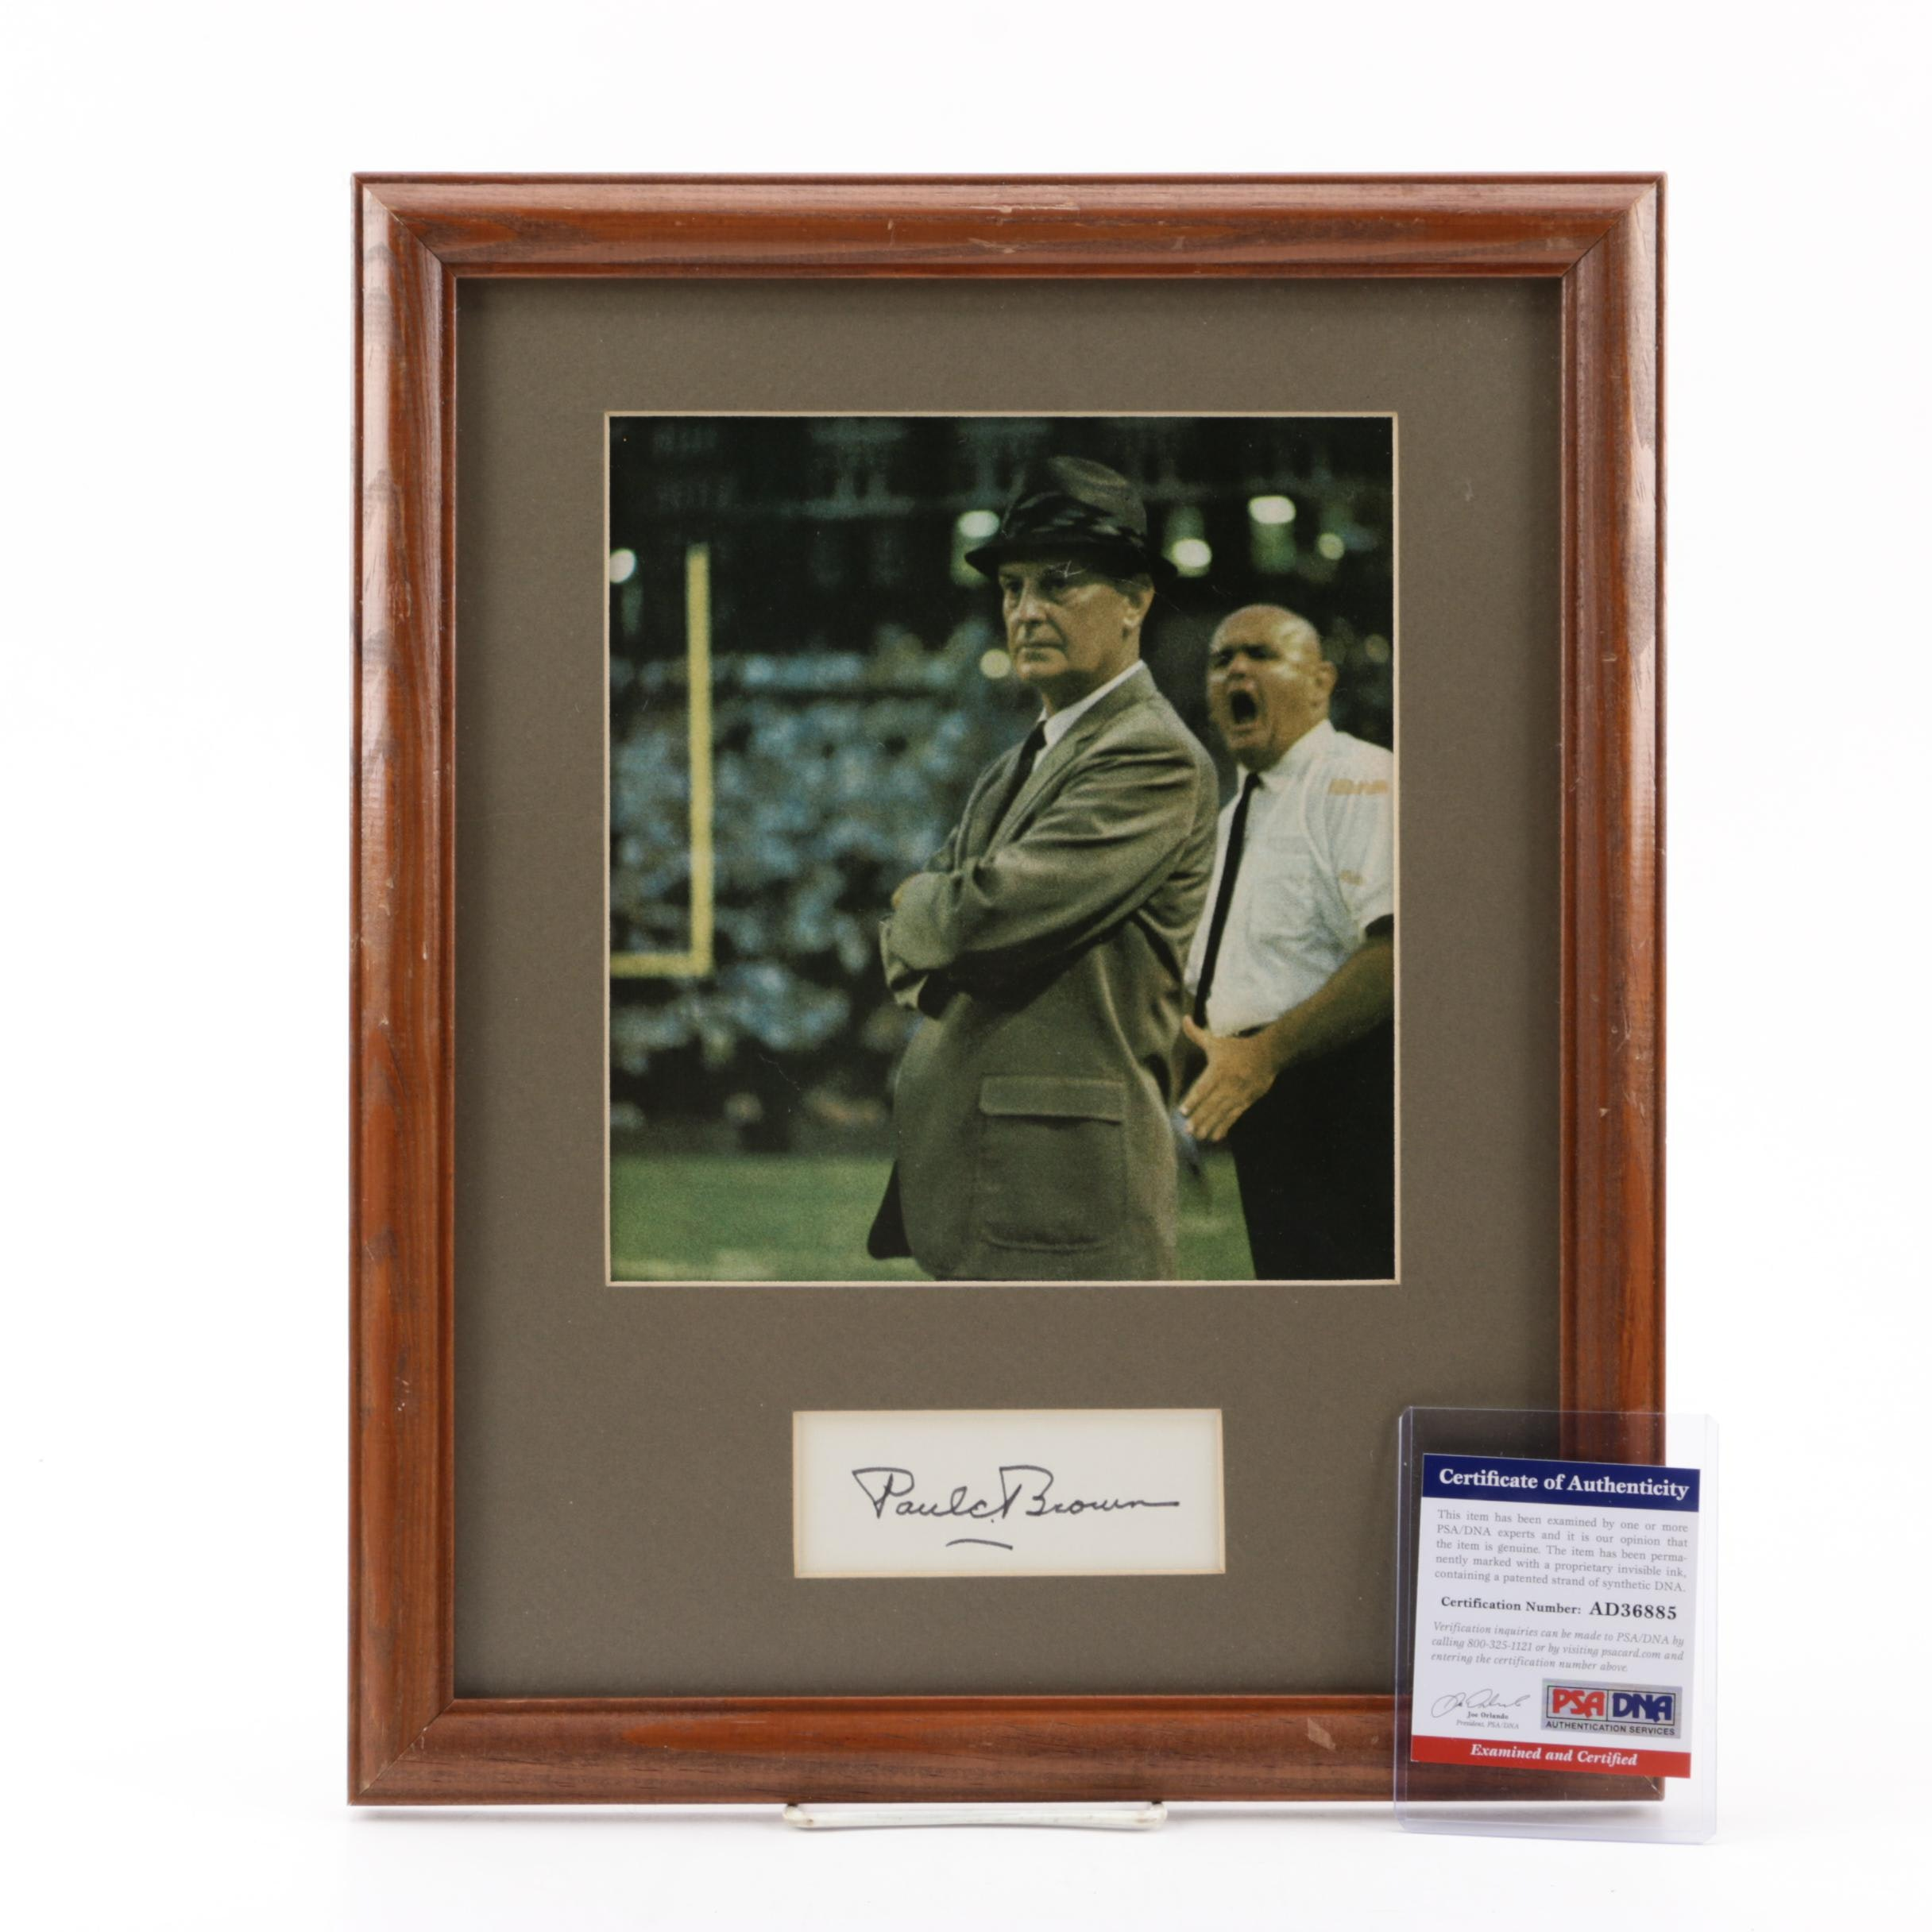 Paul Brown (HOF) Autographed Index Card with Photograph, PSA/DNA COA